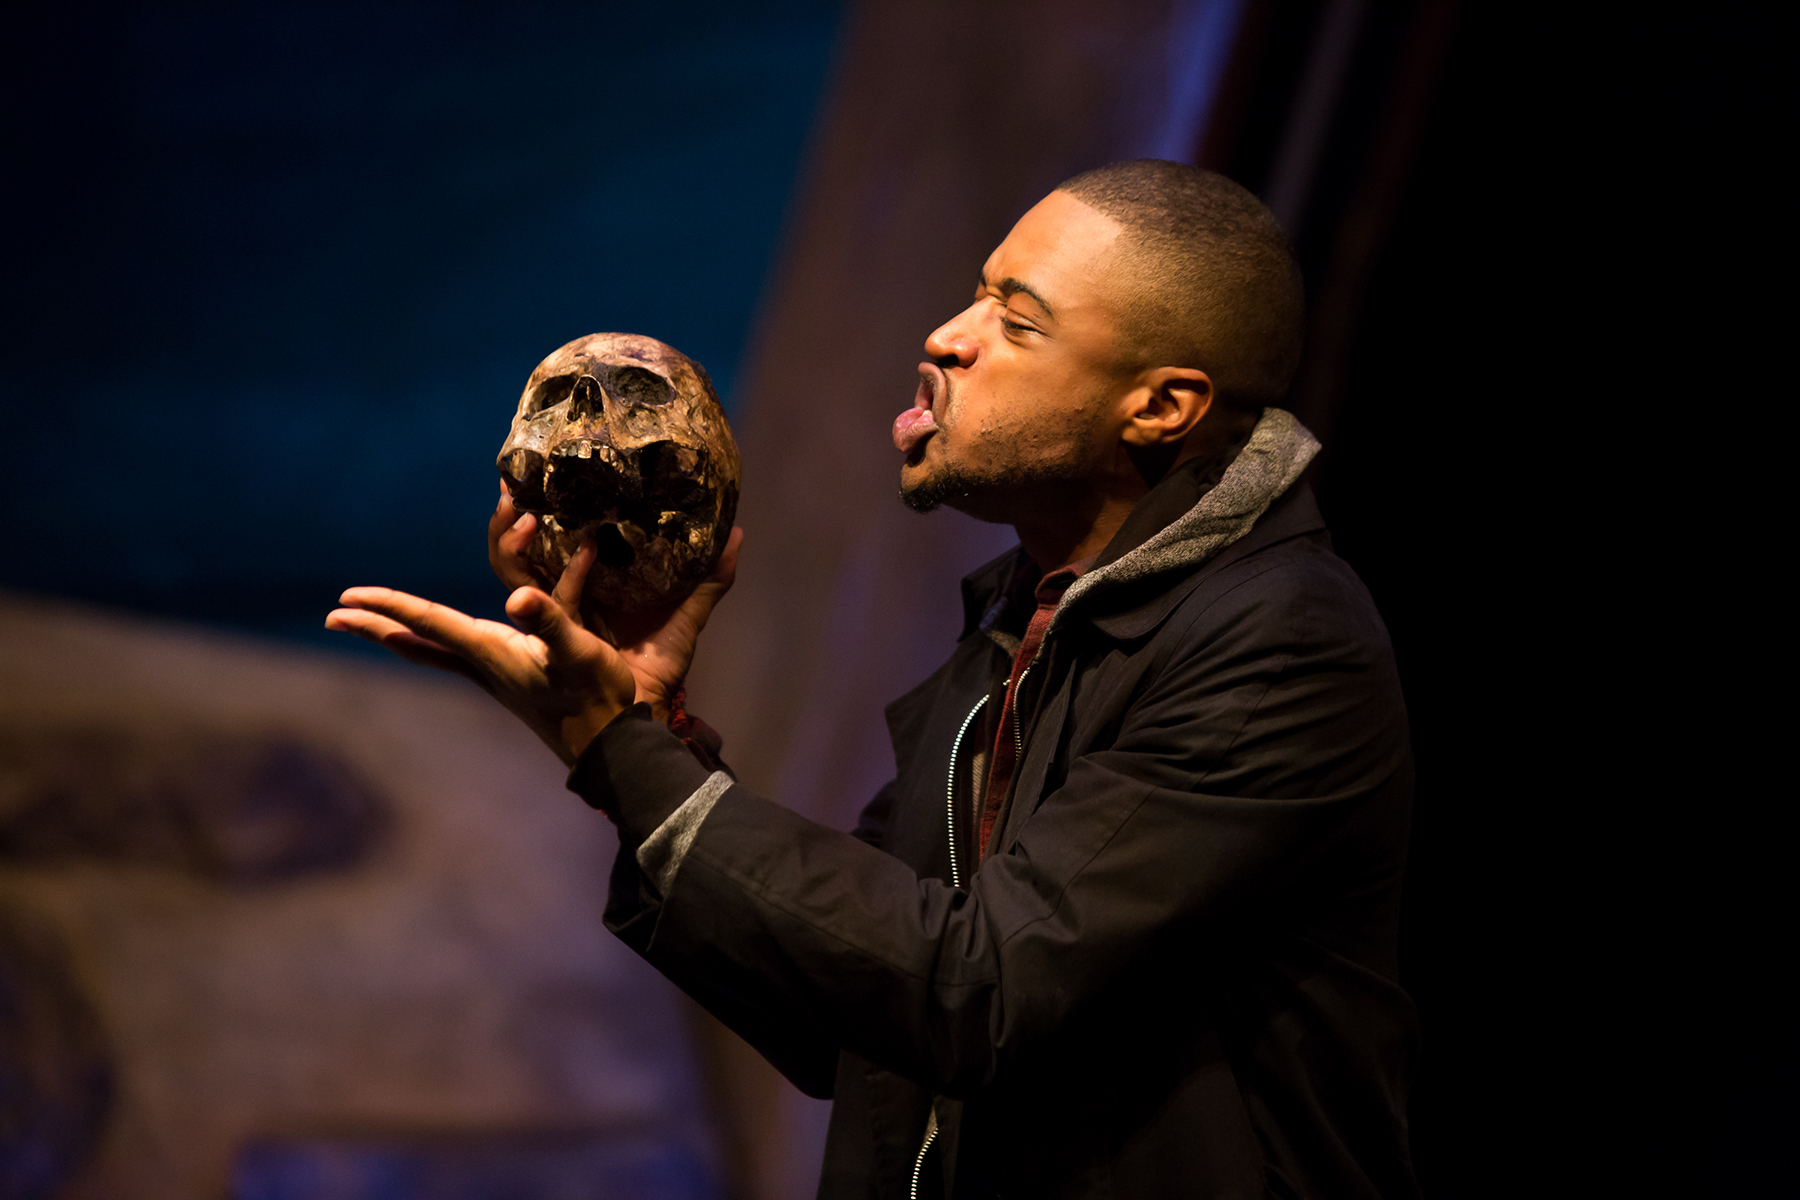 hamlet_photo_by_amyanderson_3250